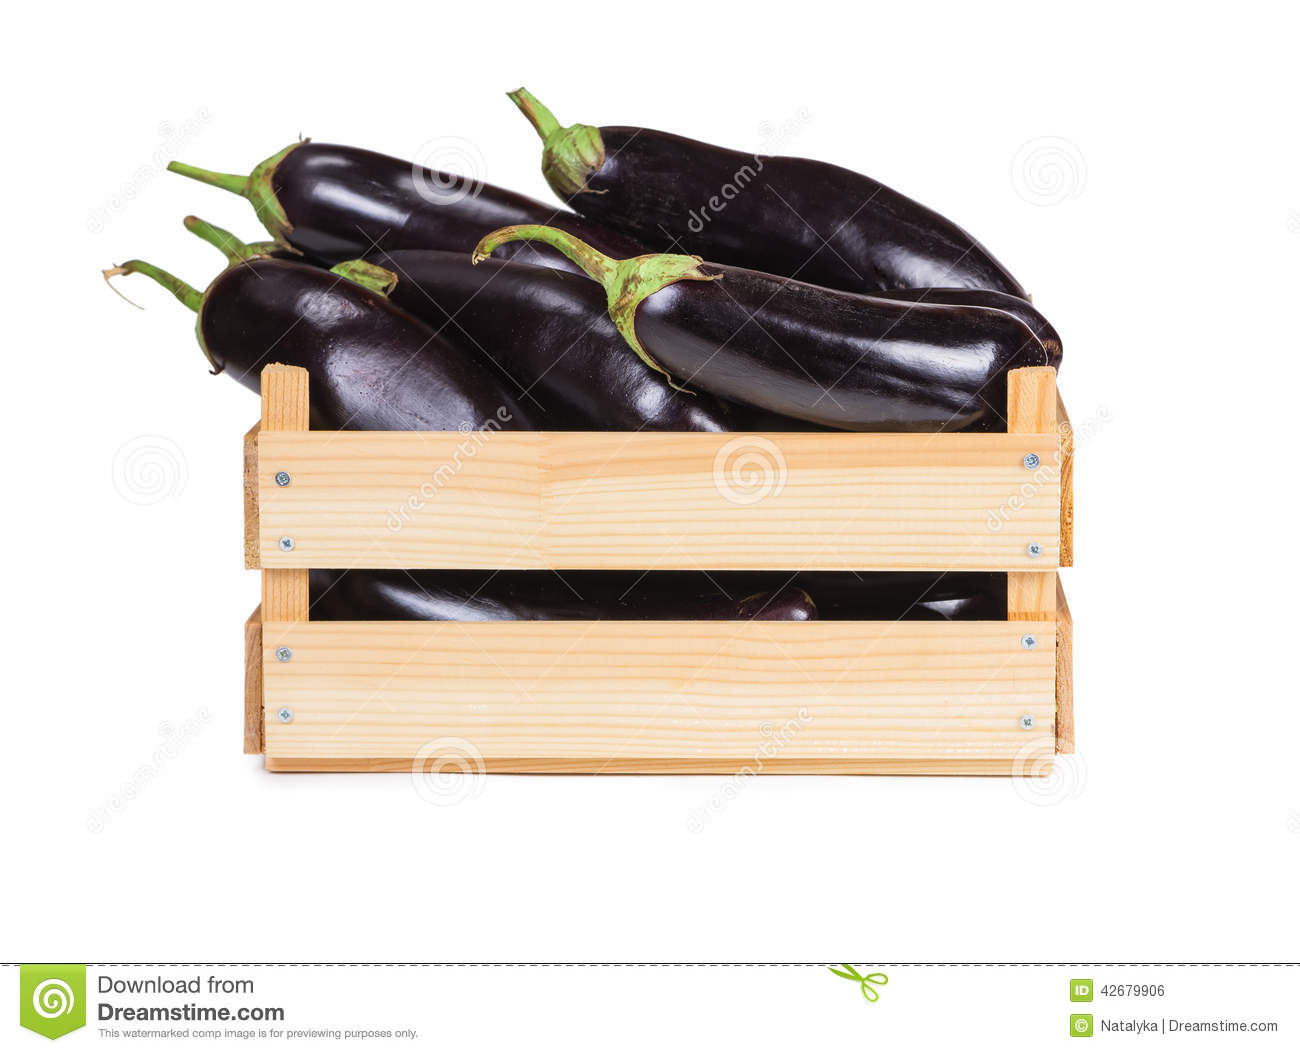 88b2d04b4d Ripe Eggplant In A Wooden Box Stock Photo - Image of sweet, white ...